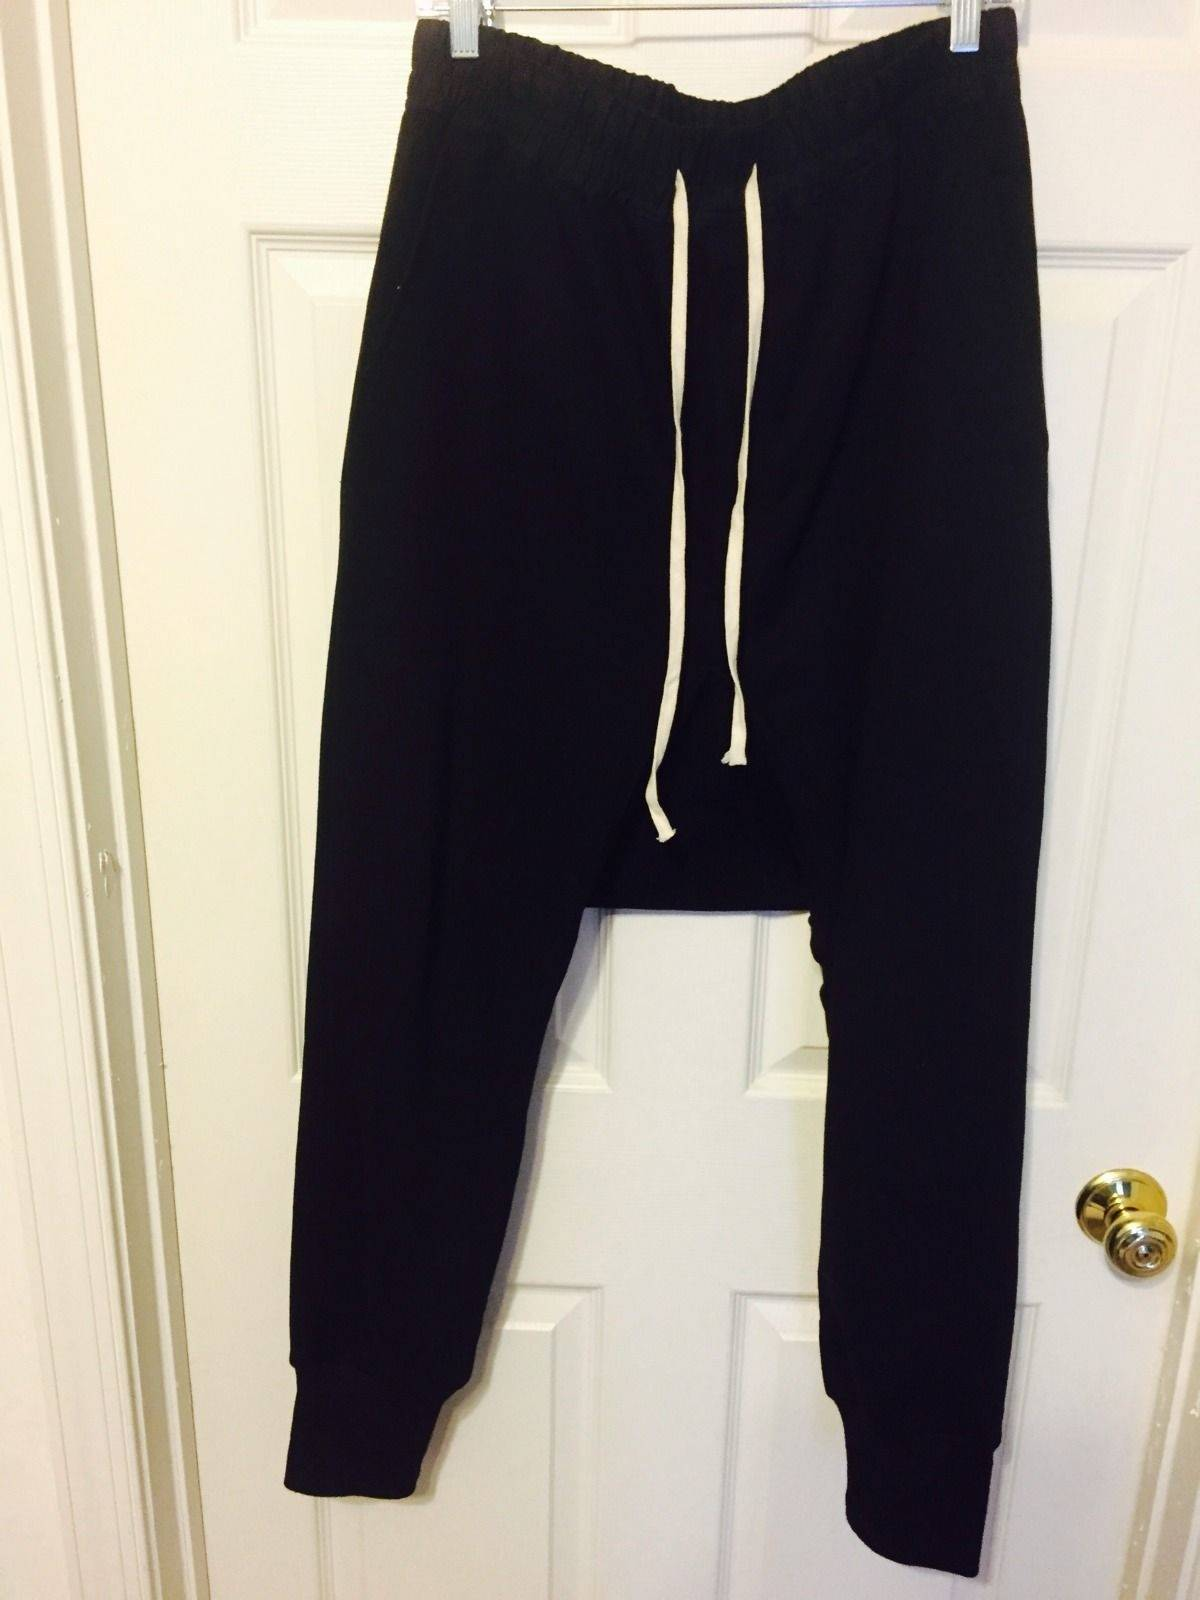 Rick Owens Prisoner Pants Nwt Size 31 For Sale Grailed Make Your Own Beautiful  HD Wallpapers, Images Over 1000+ [ralydesign.ml]